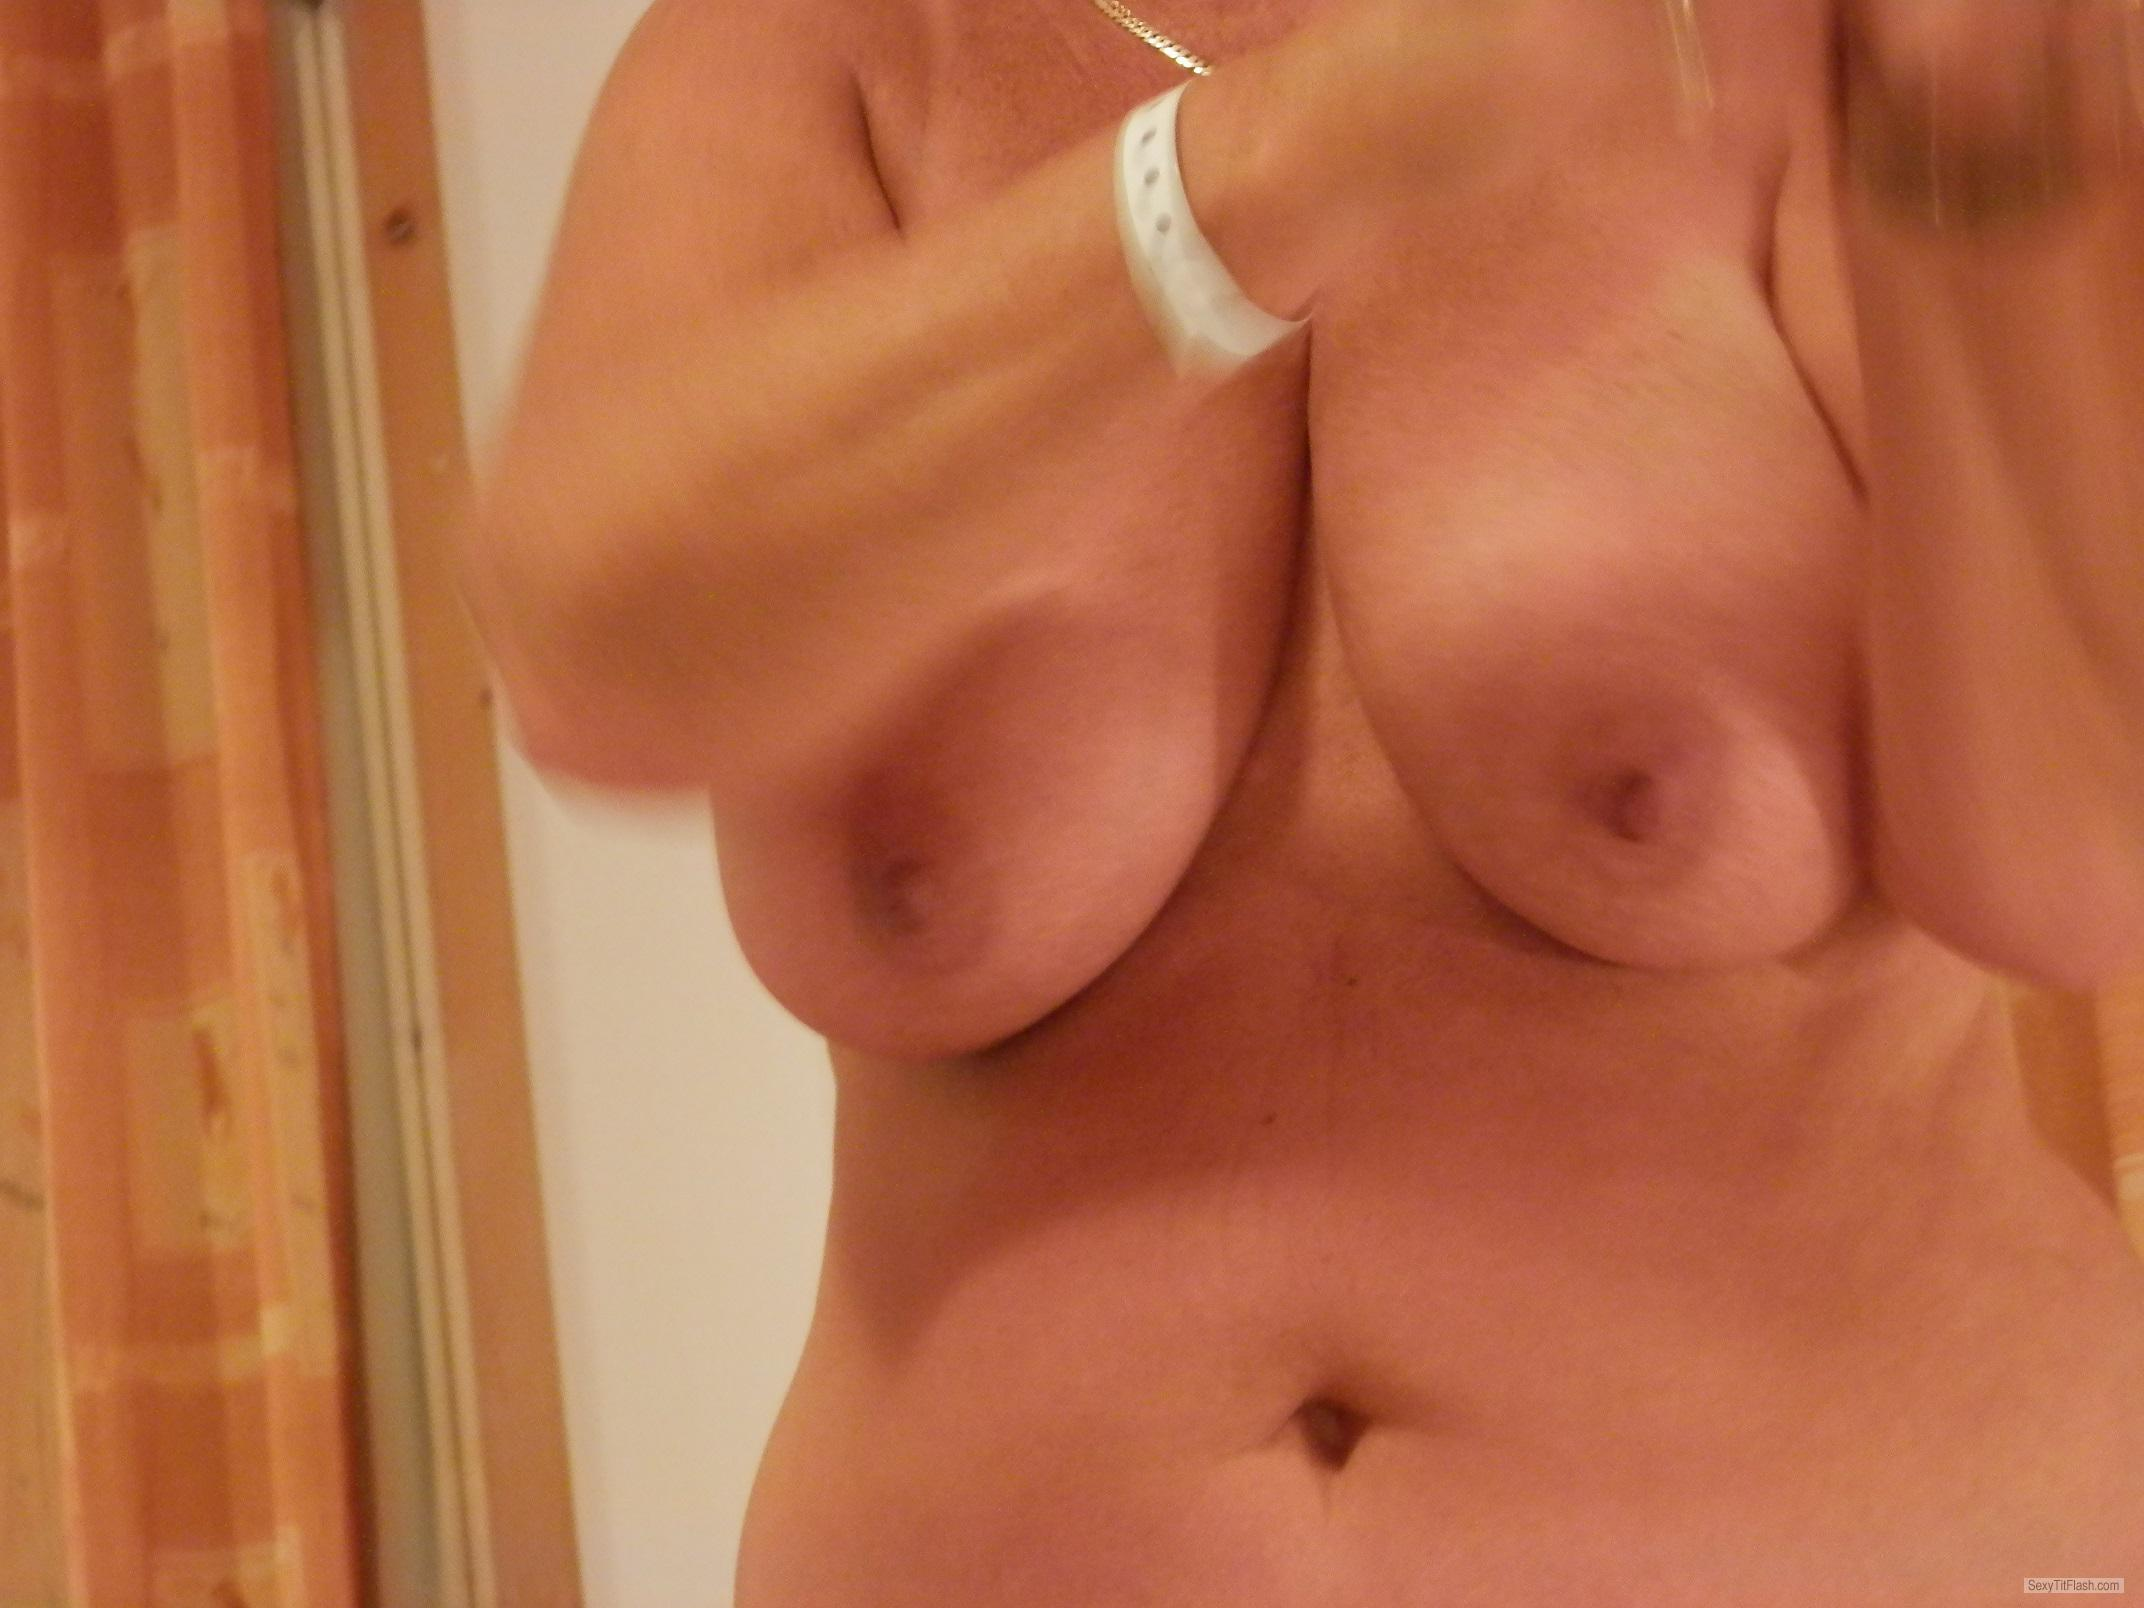 Tit Flash: Wife's Very Big Tits - Carol from United Kingdom